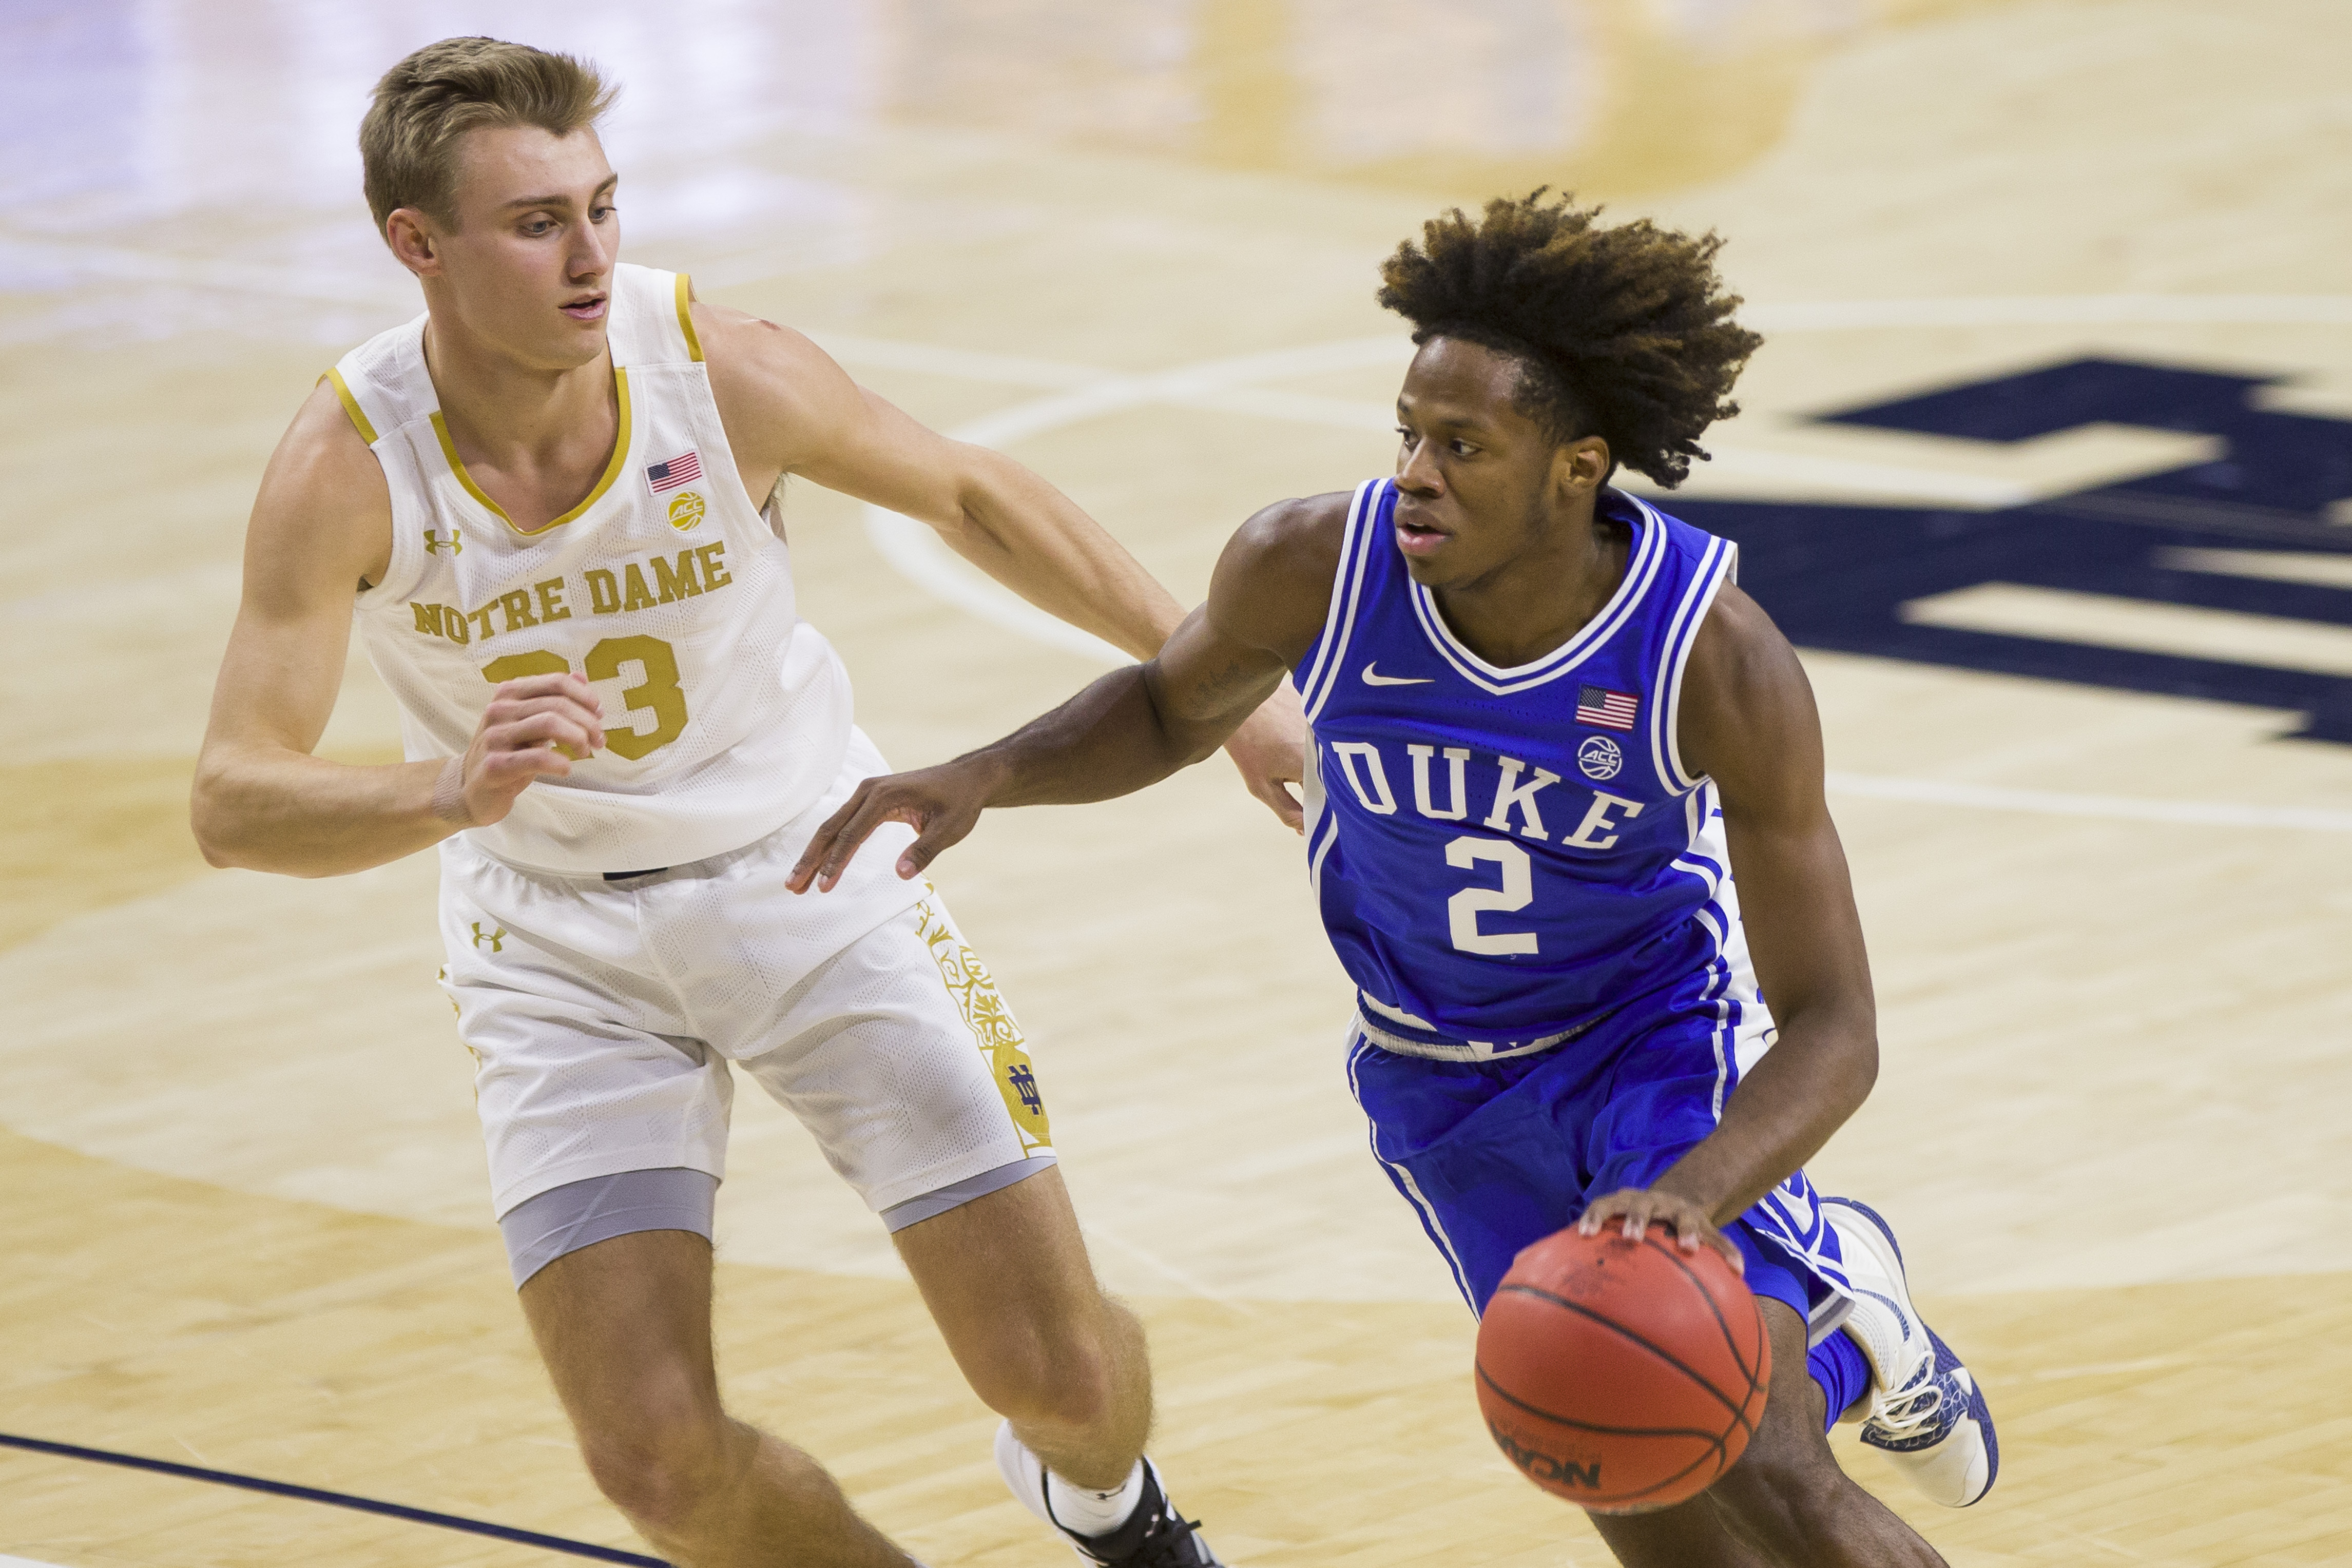 Duke's DJ Steward (2) drives by Notre Dame's Dane Goodwin (23) during the first half of an NCAA college basketball game Wednesday, Dec. 16, 2020, in South Bend, Ind.